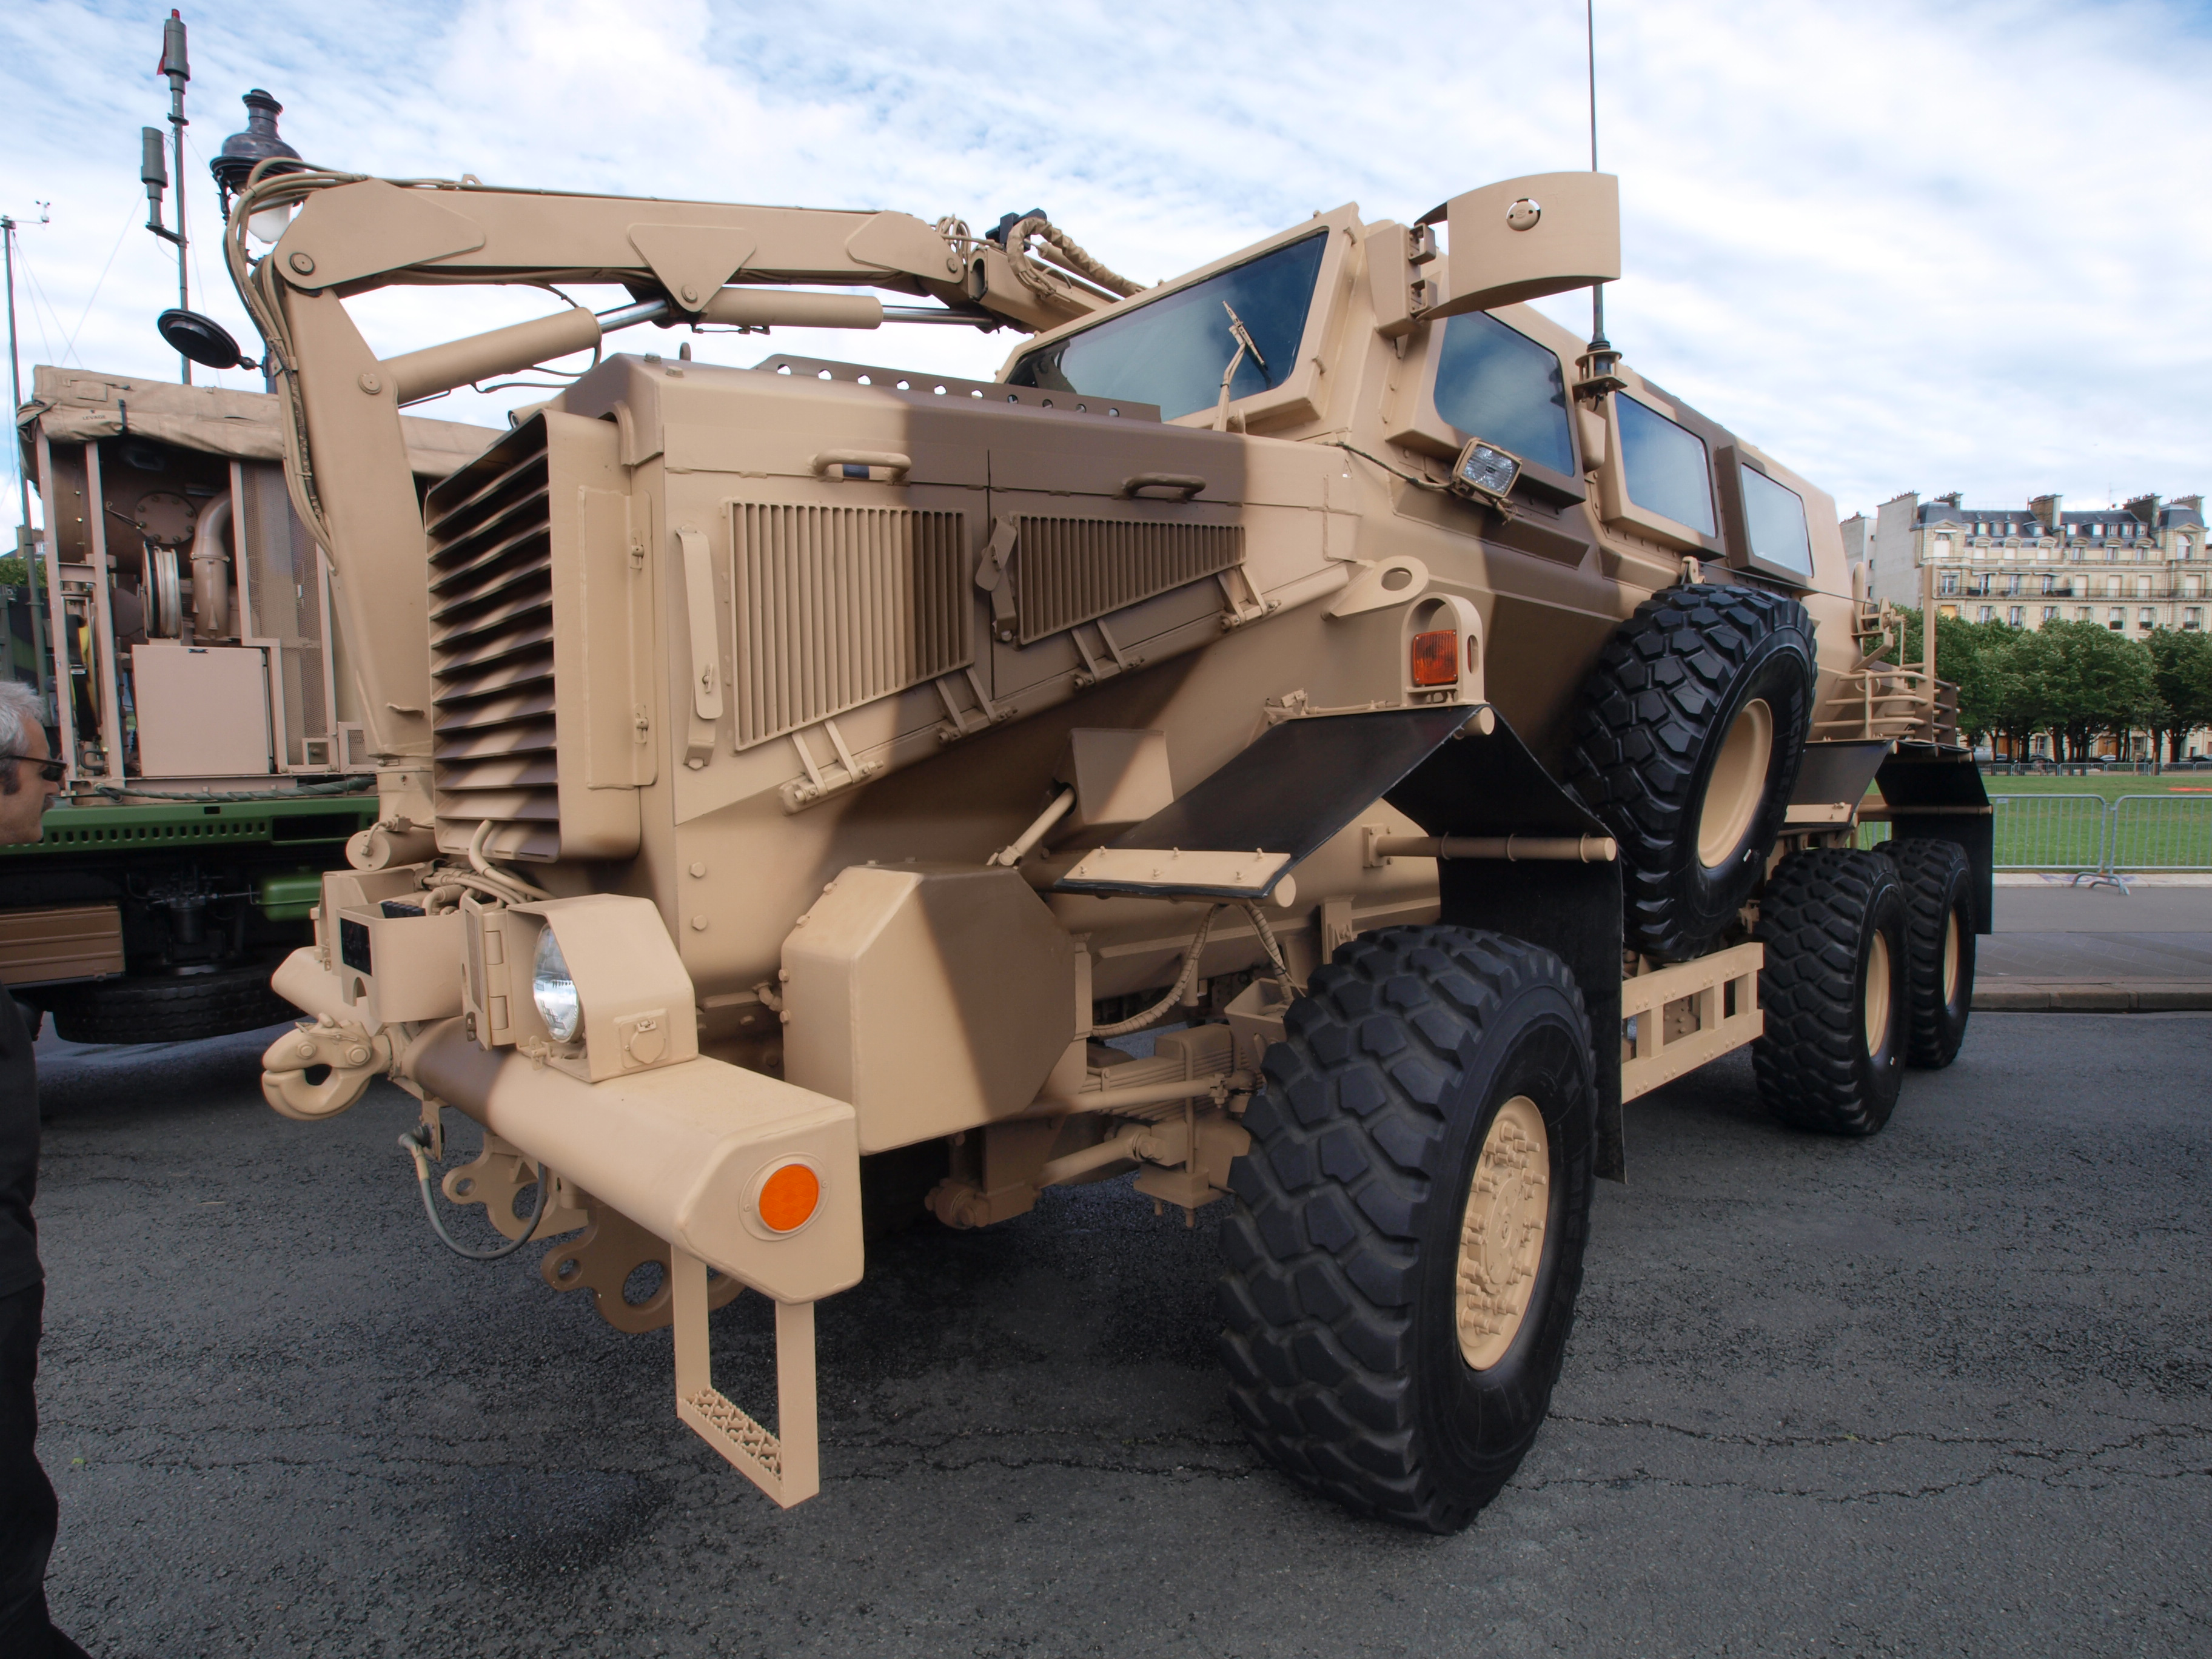 file buffalo mrap mine resistant ambush protected vehicle photo 4 jpg wikimedia commons. Black Bedroom Furniture Sets. Home Design Ideas